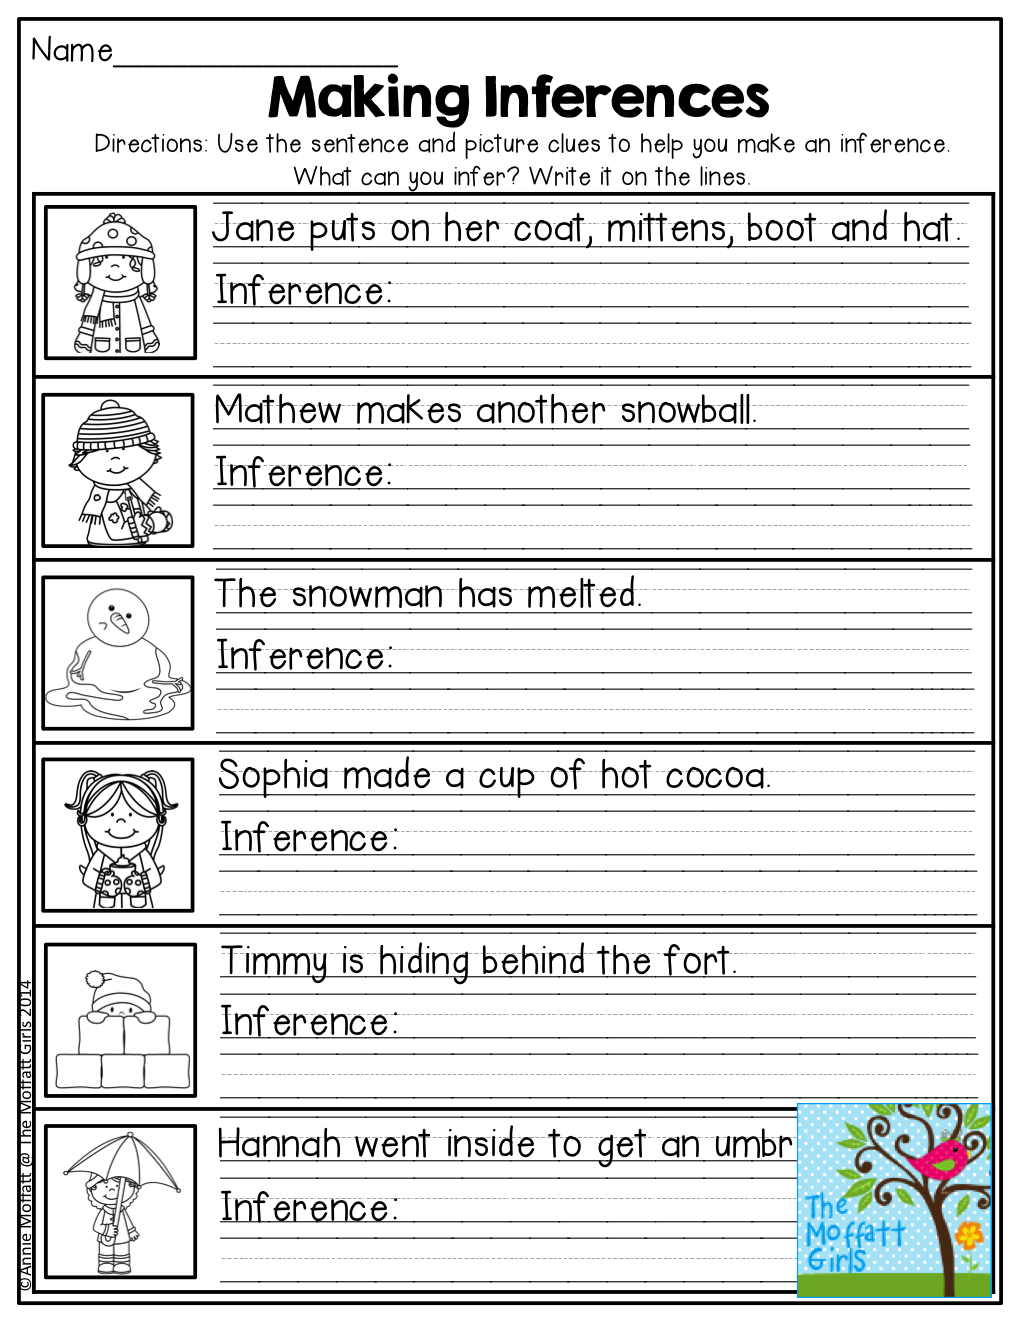 Worksheets Making Inferences Worksheet 4th Grade january no prep math and literacy 2nd grade making inferences tons of great printables for grade